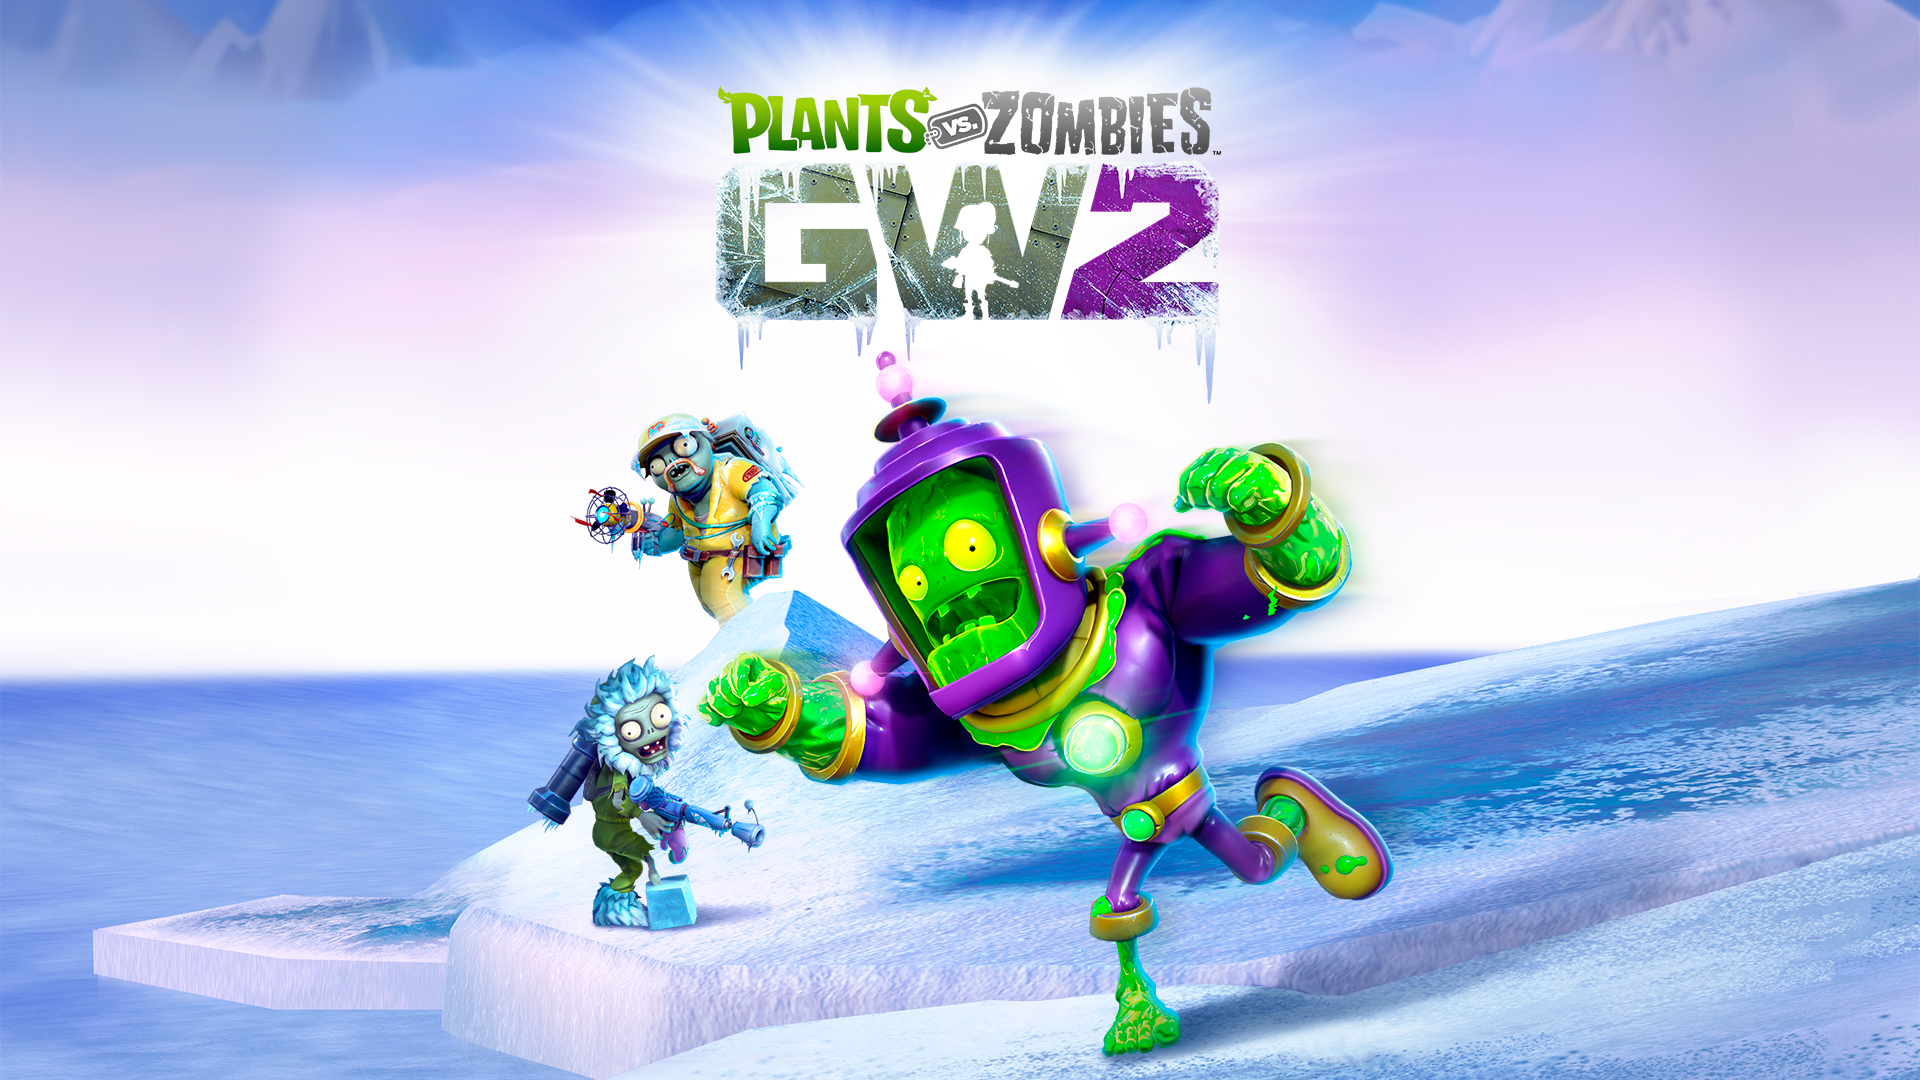 plants vs zombies 2 pc free download full version kickass